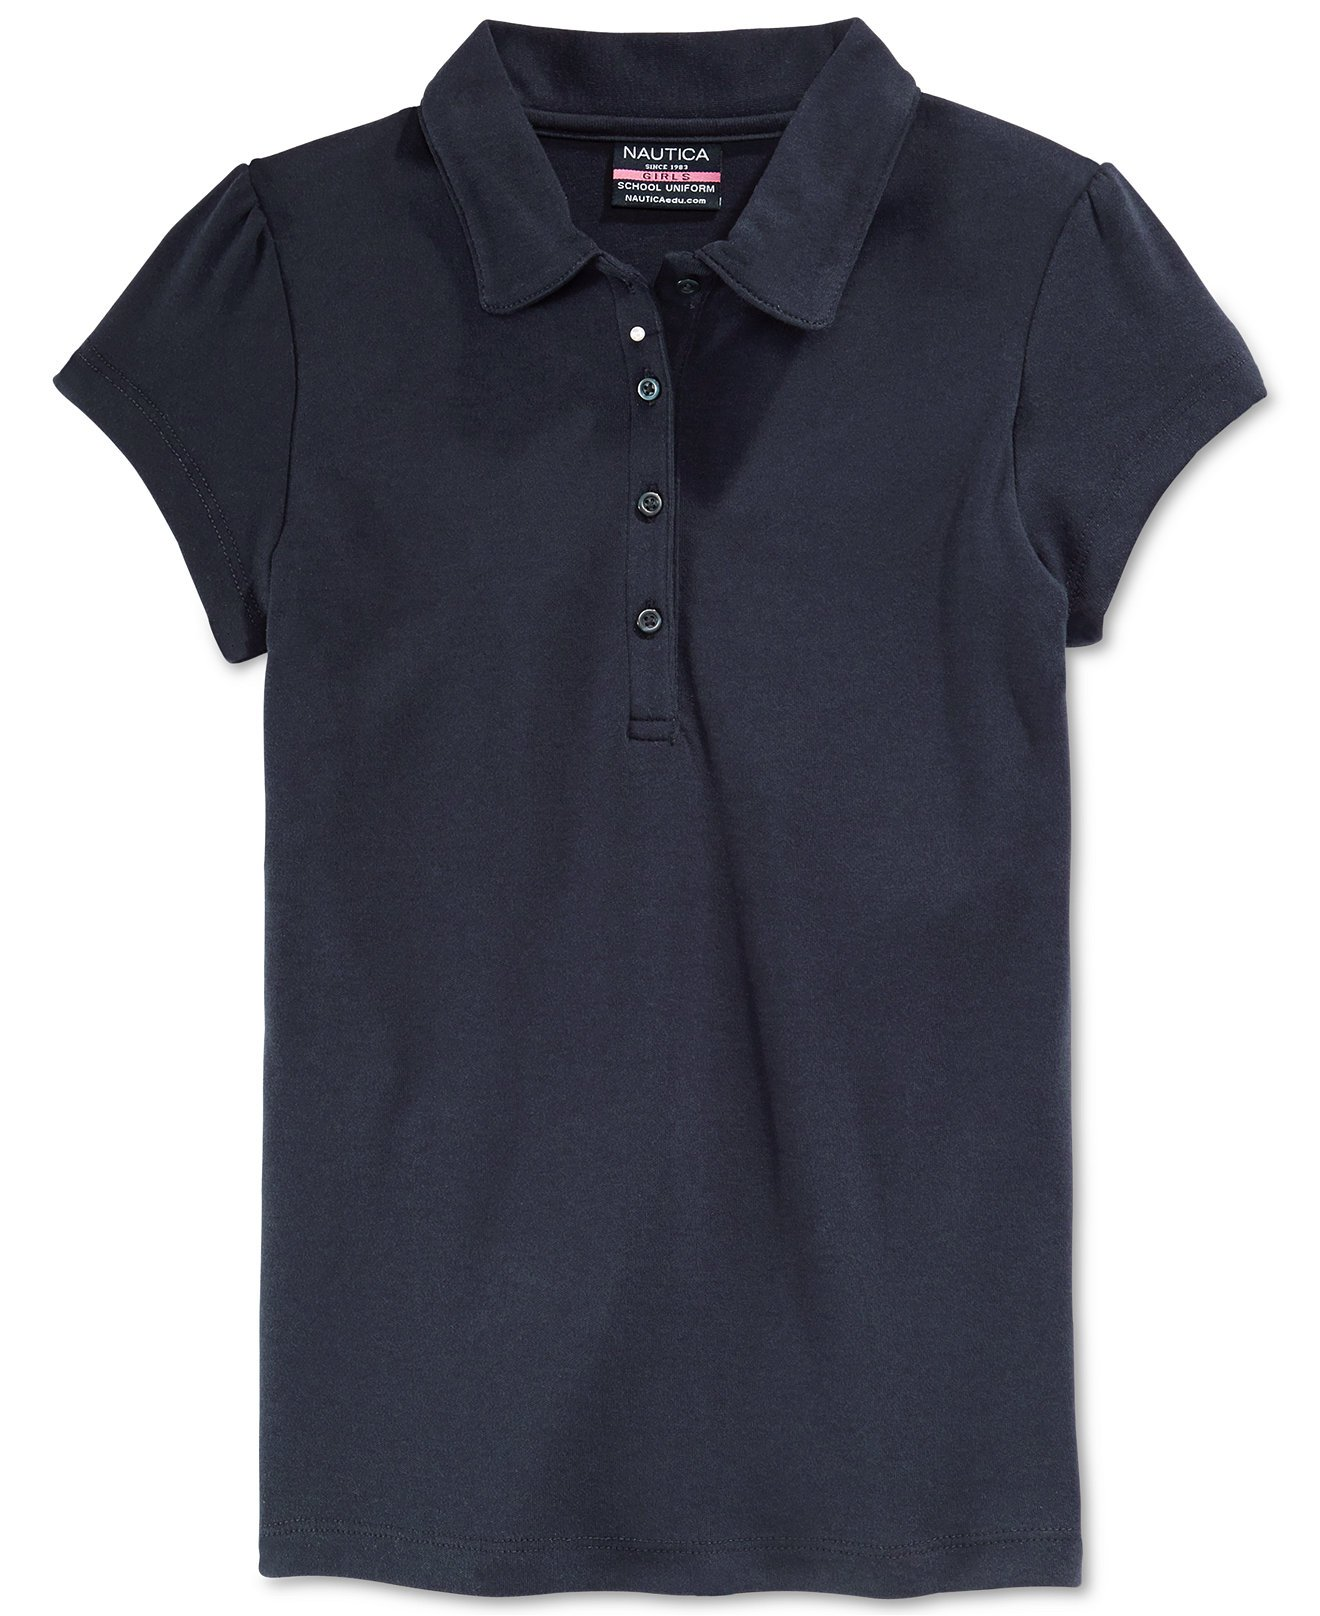 Nautica Girls' School Uniform Short-Sleeve Polo Shirt (X-Large (16) Regular, Navy)